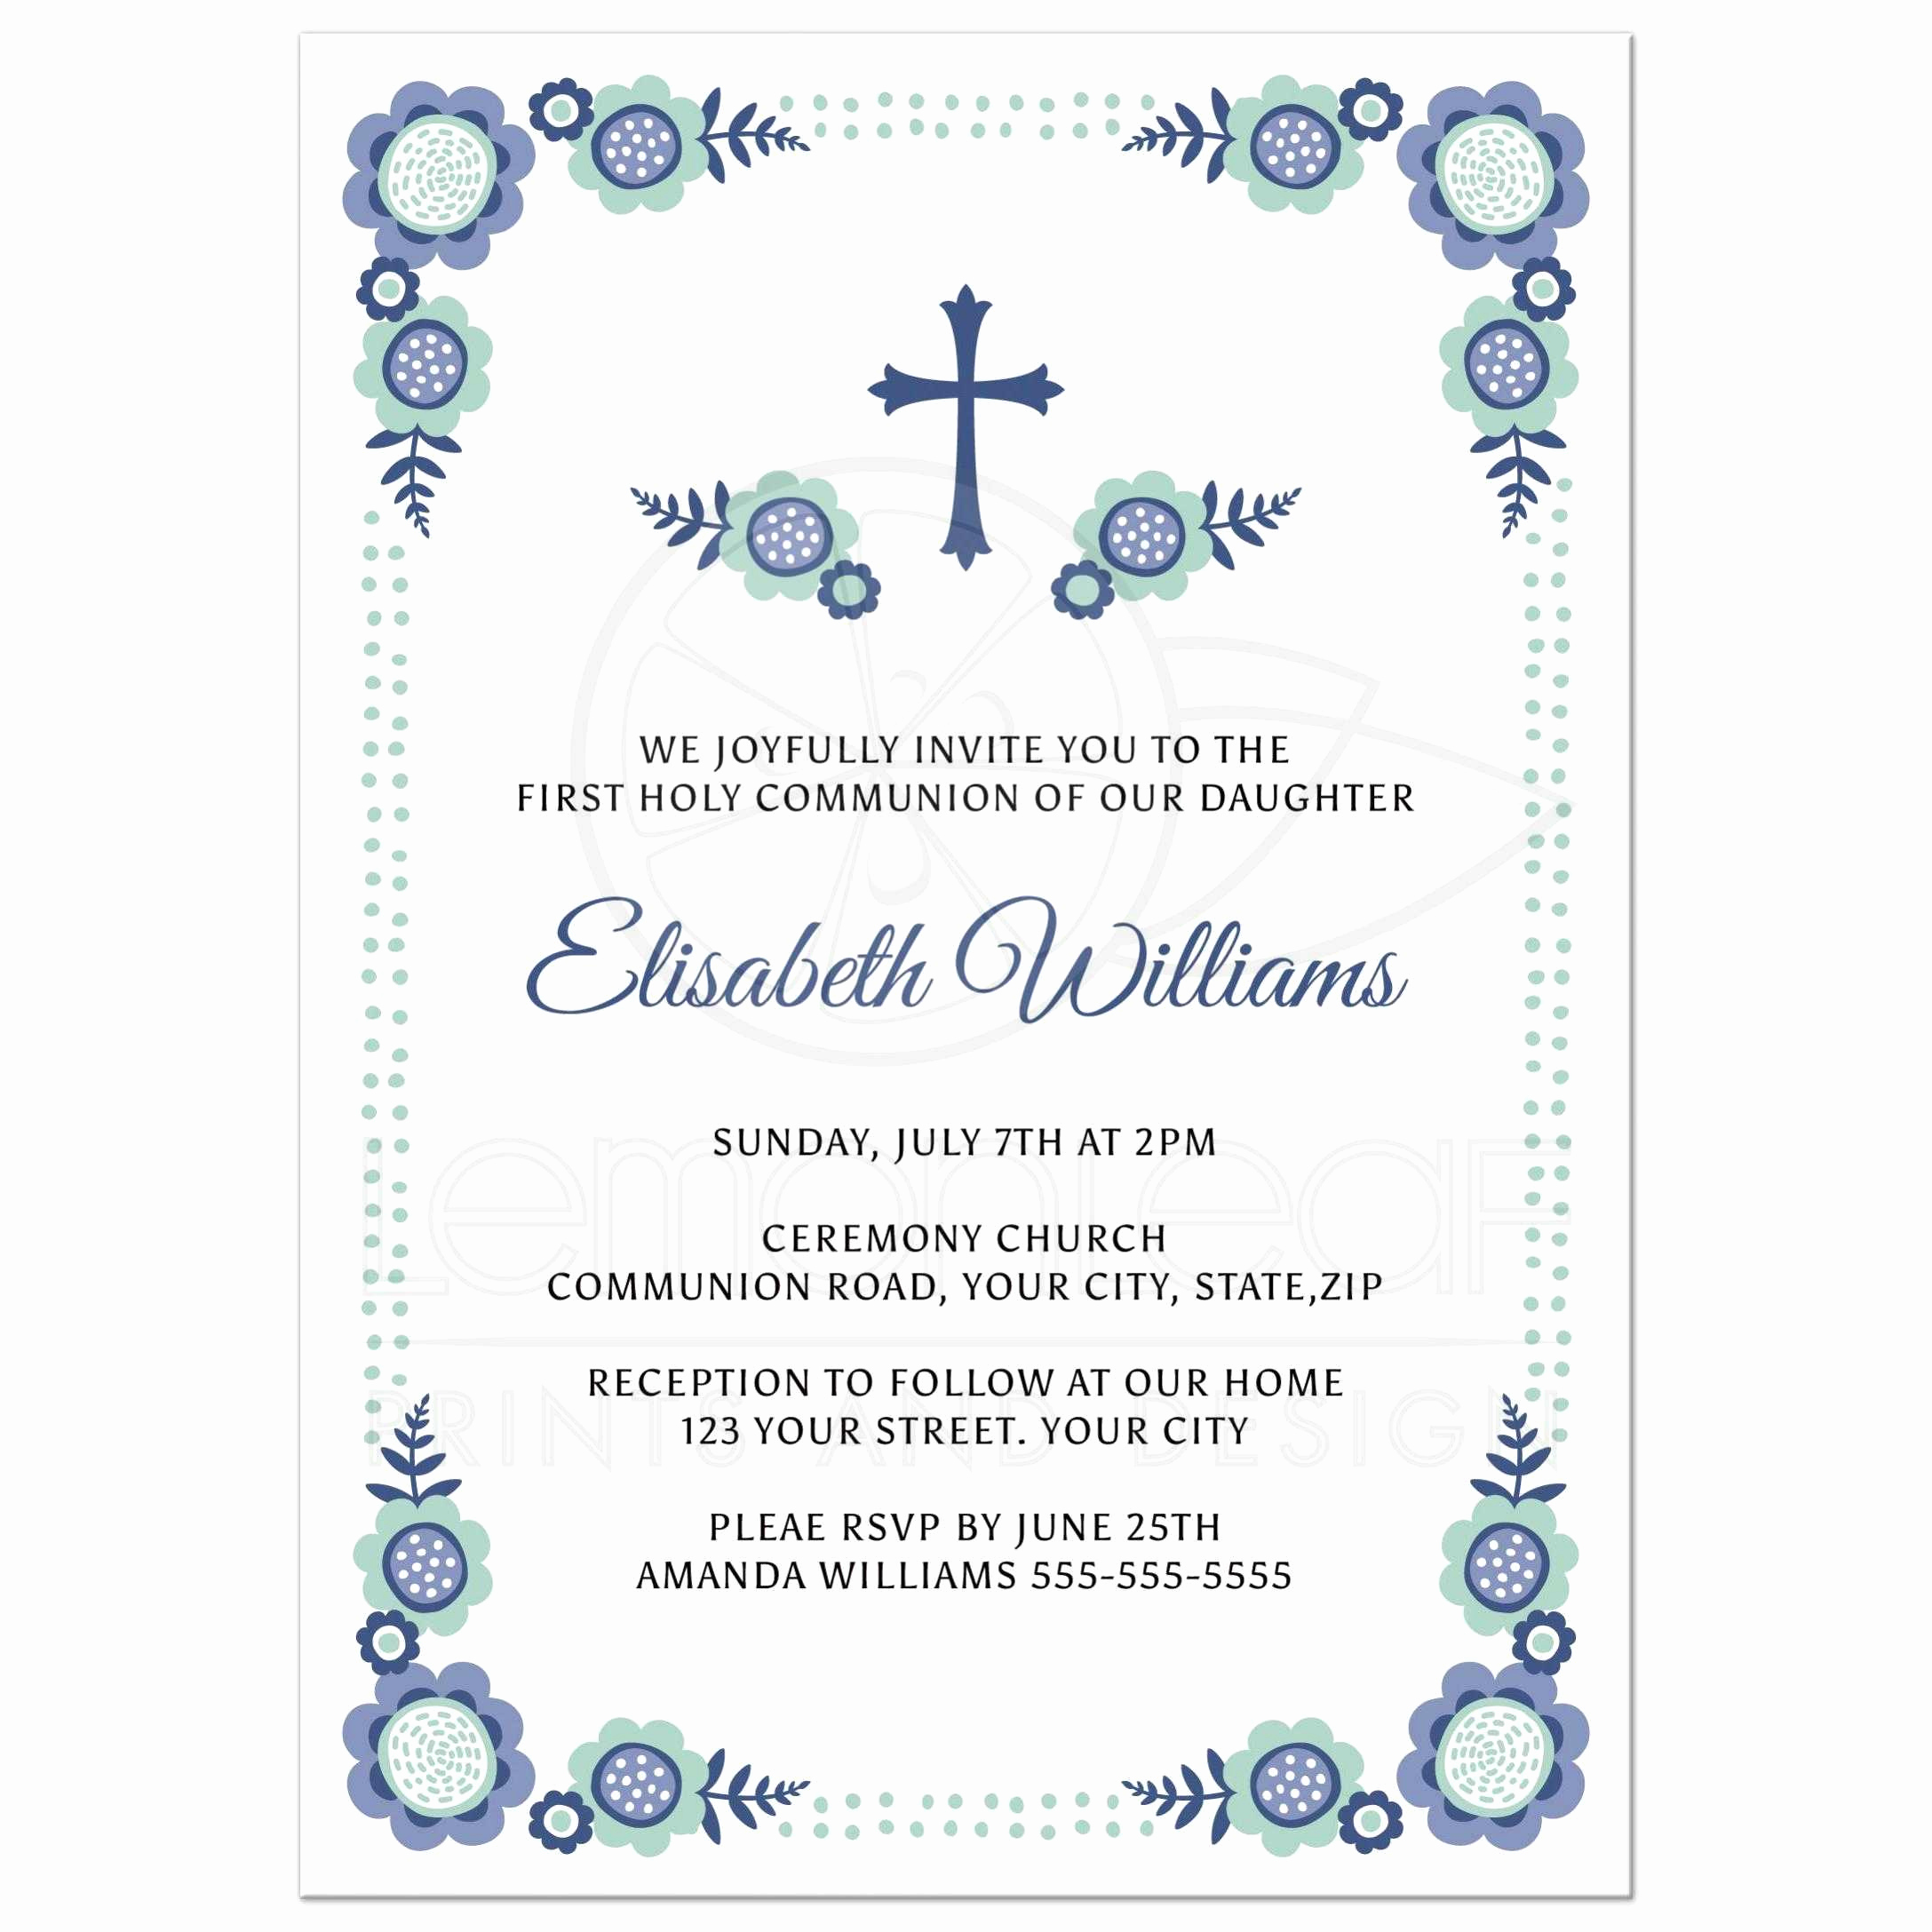 First Communion Invitation Wording Fresh Blue Bloom First Holy Munion Invitation with Cute